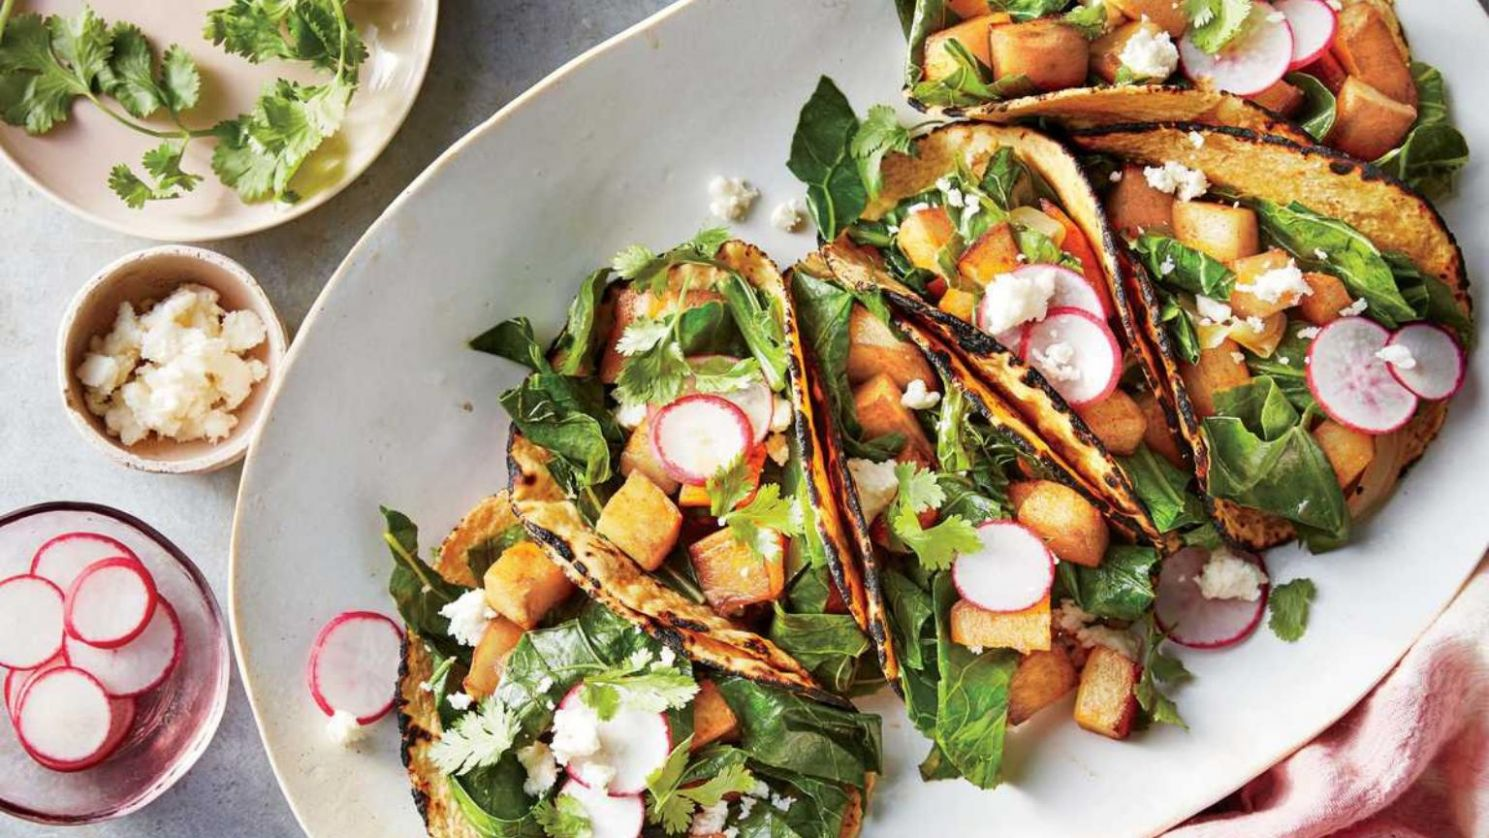 10 Easy Vegetarian Recipes for Busy Weeknights - Easy Recipes Veg